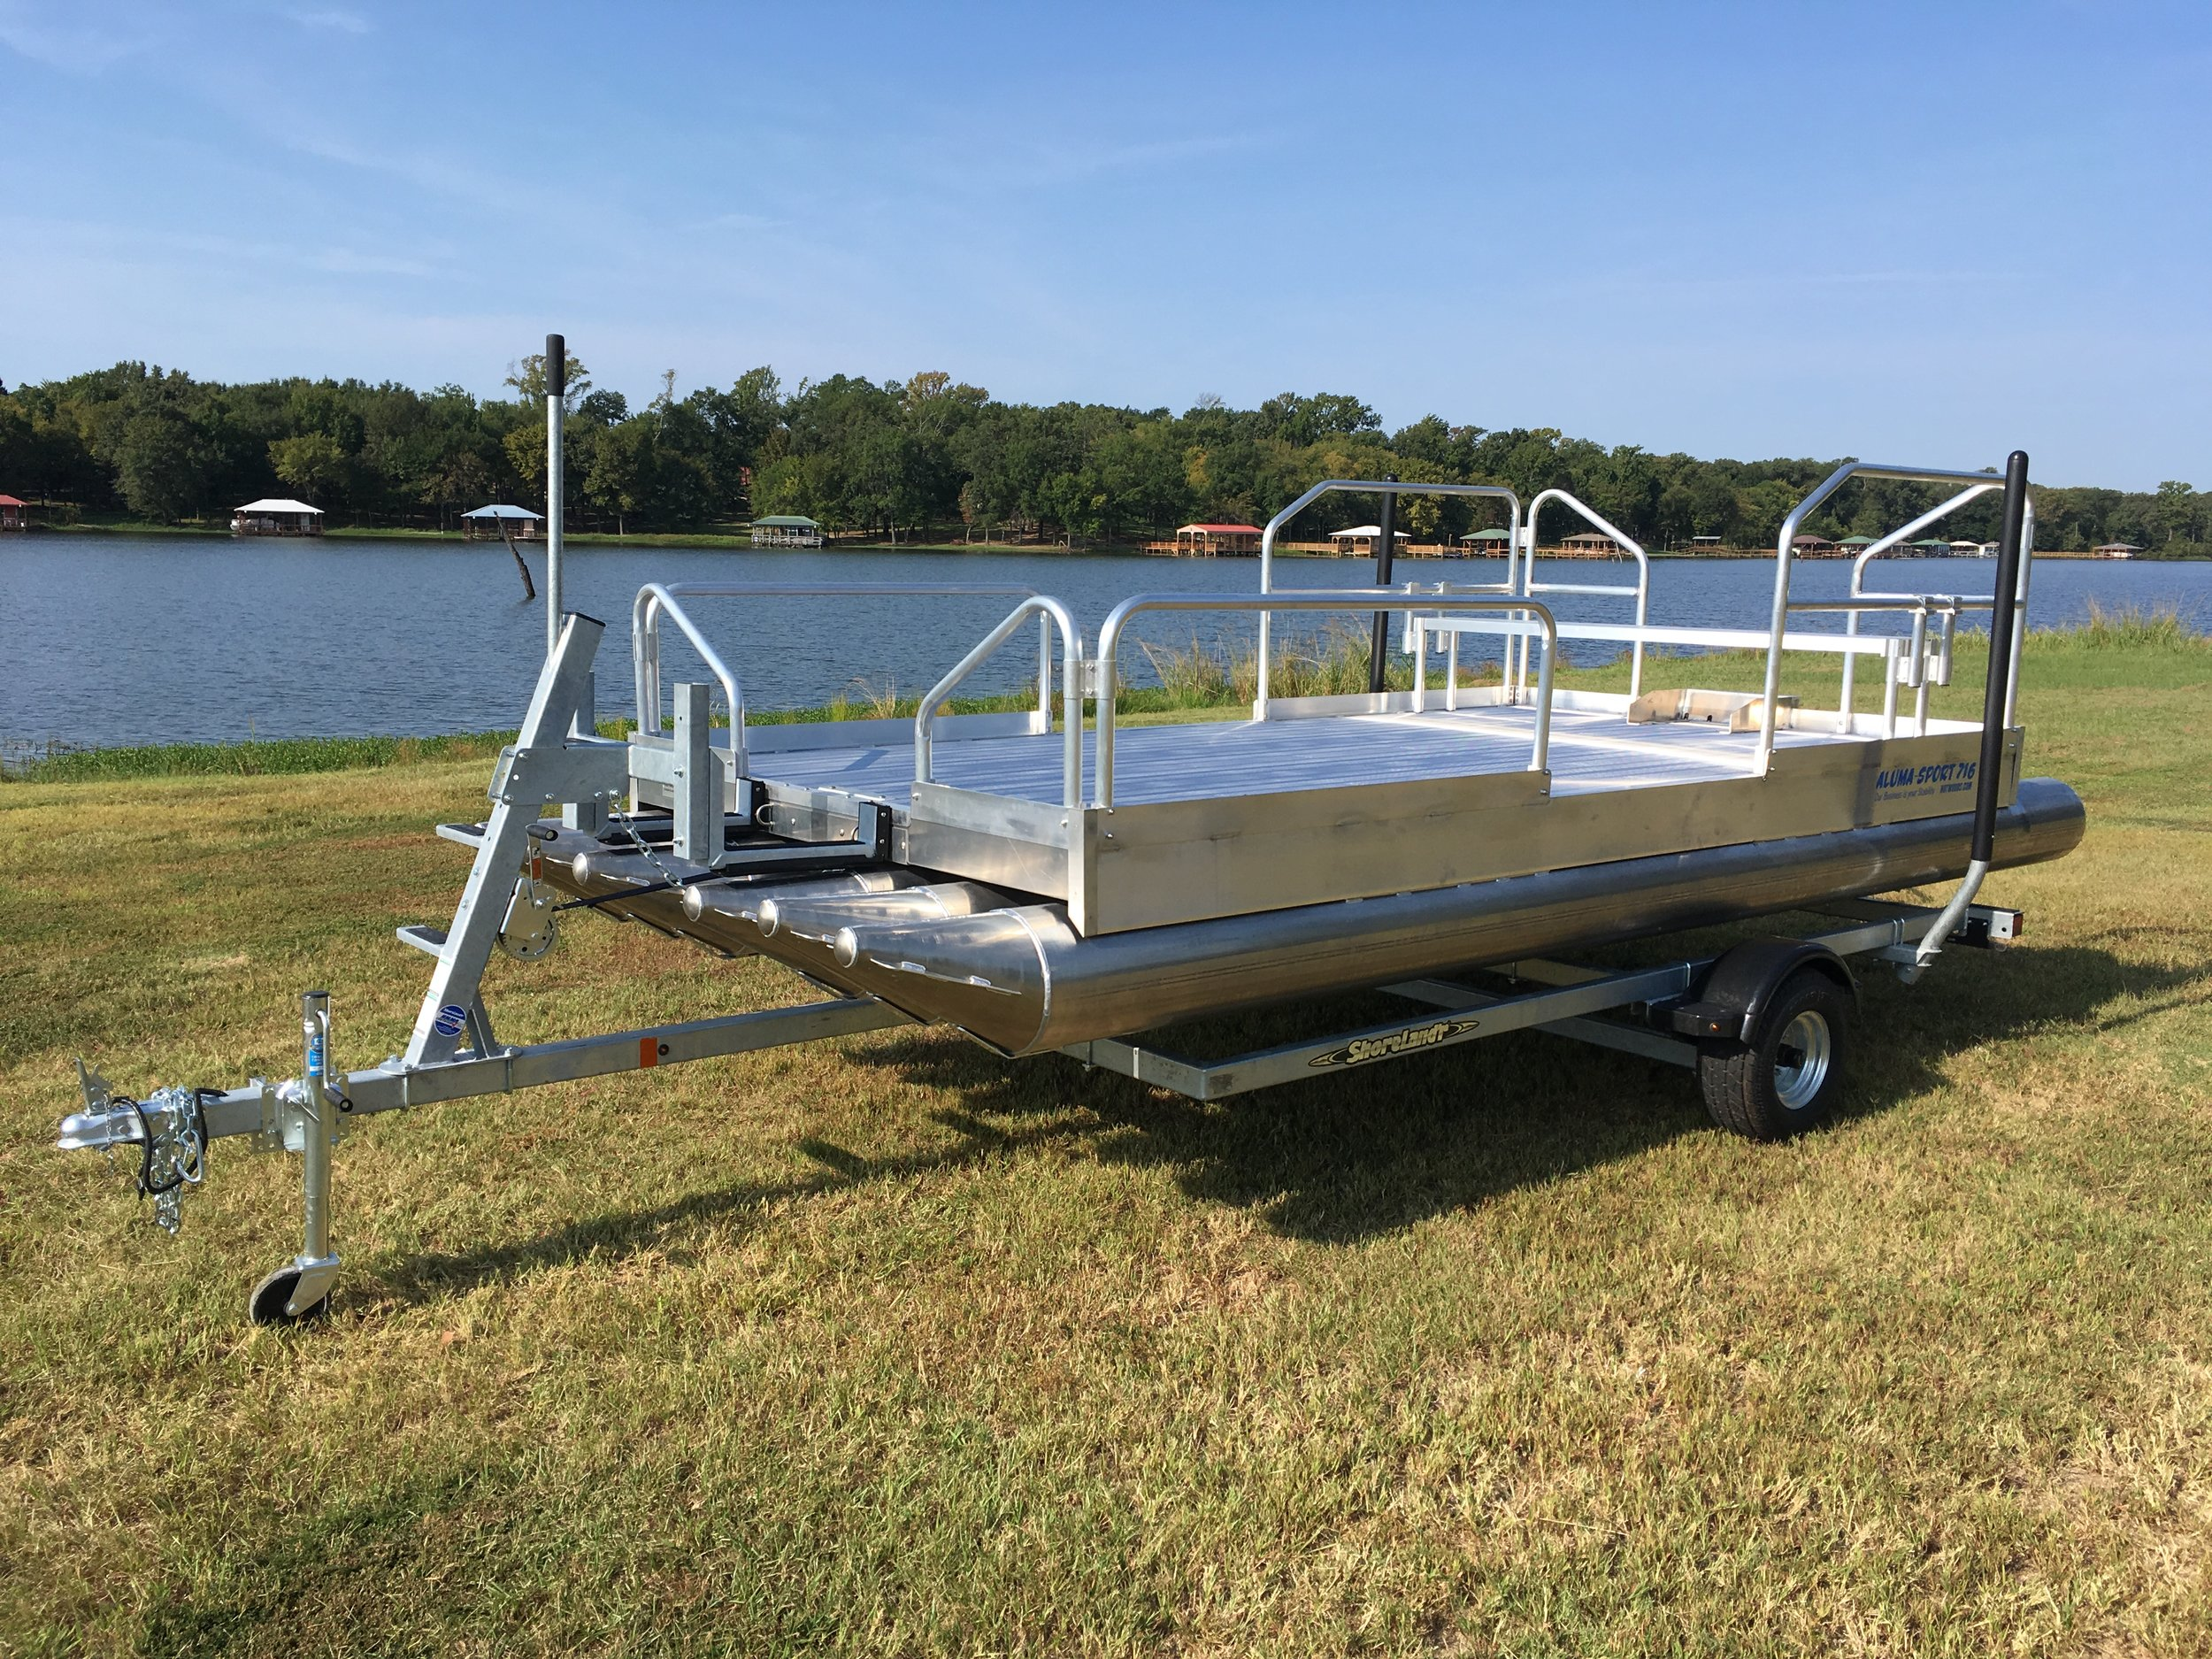 716 Aluma Sport shown with galvanized Shoreland'r trailer designed specifically for this boat. You will not be disappointed with this craft or trailer set up in any way.